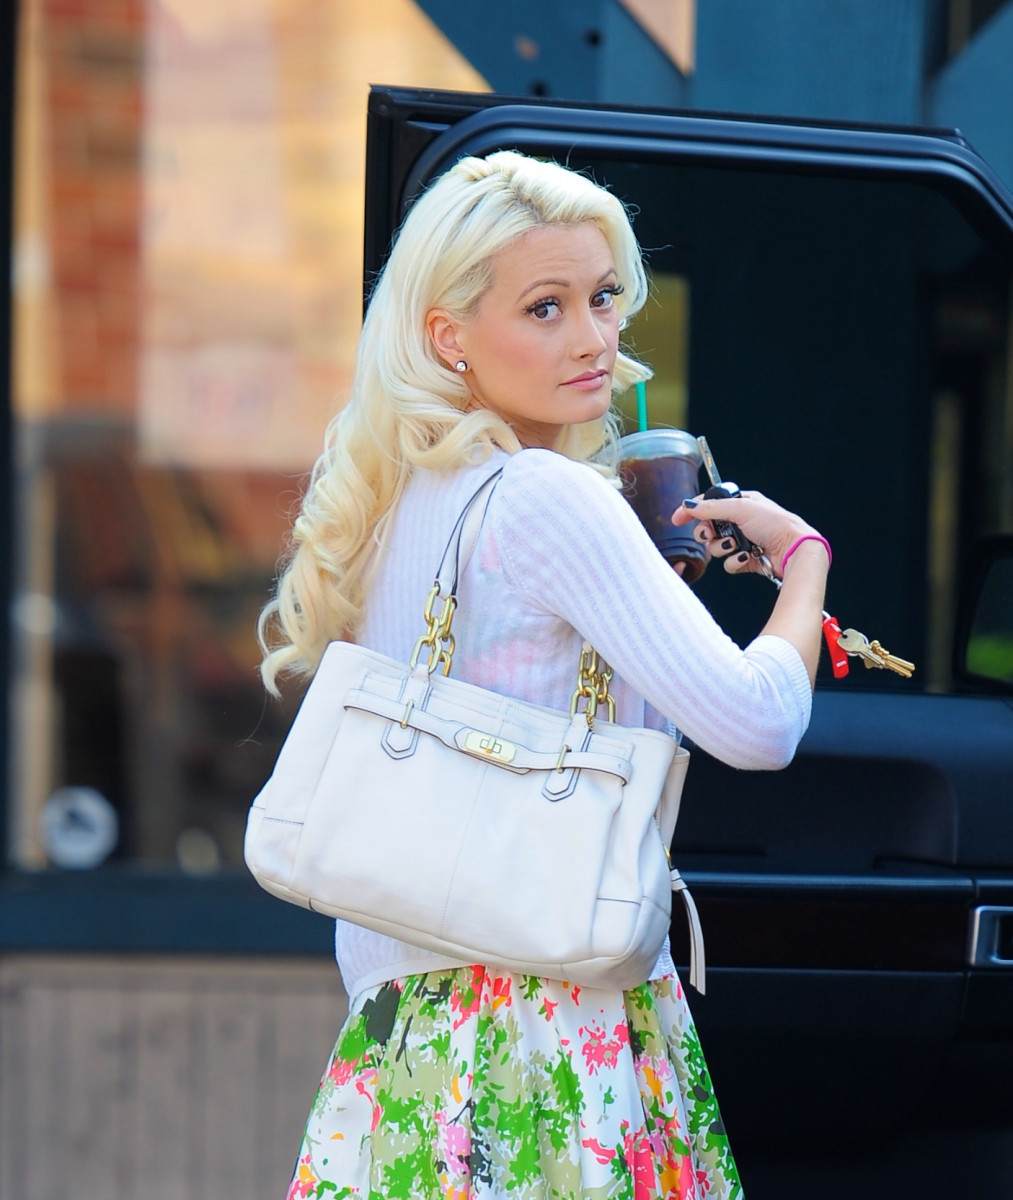 Holly Madison Photo 340 Of 390 Pics Wallpaper Photo 525221 Theplace2